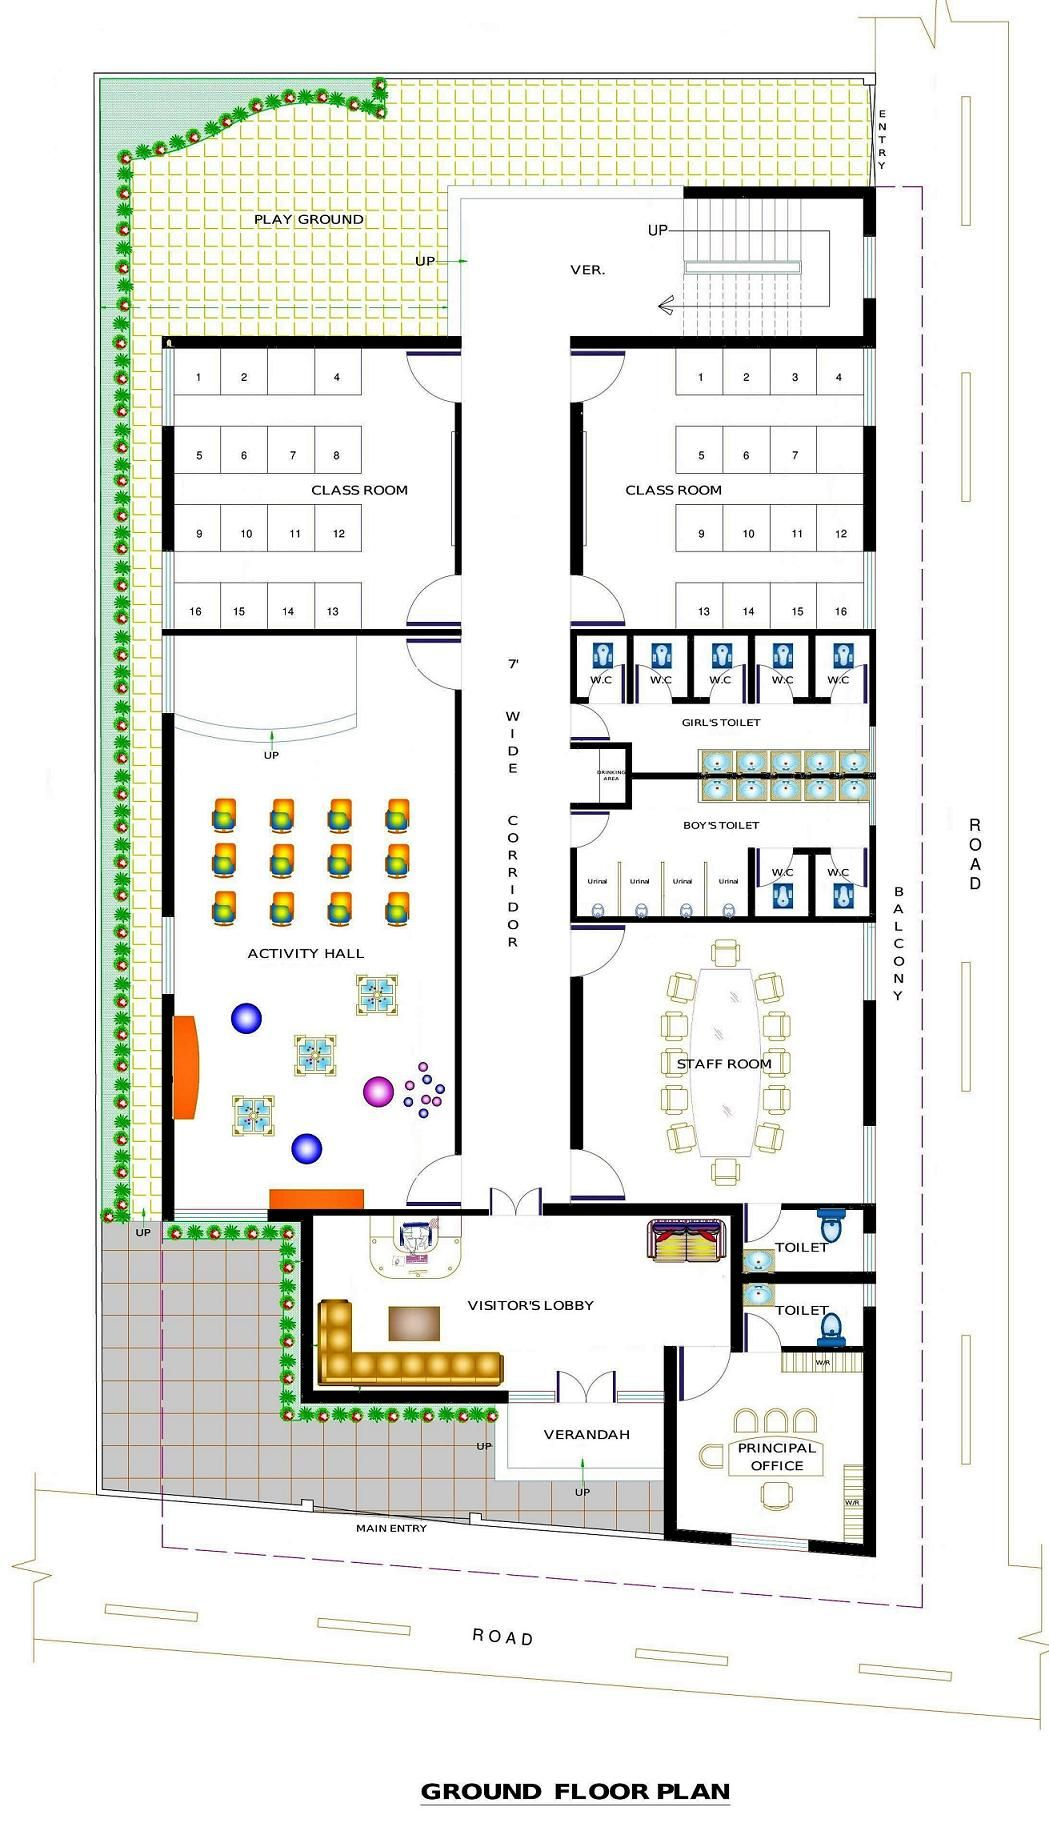 Design Room Layout Free Online: Pin By Apnaghar On Institutional Design Solutions-School